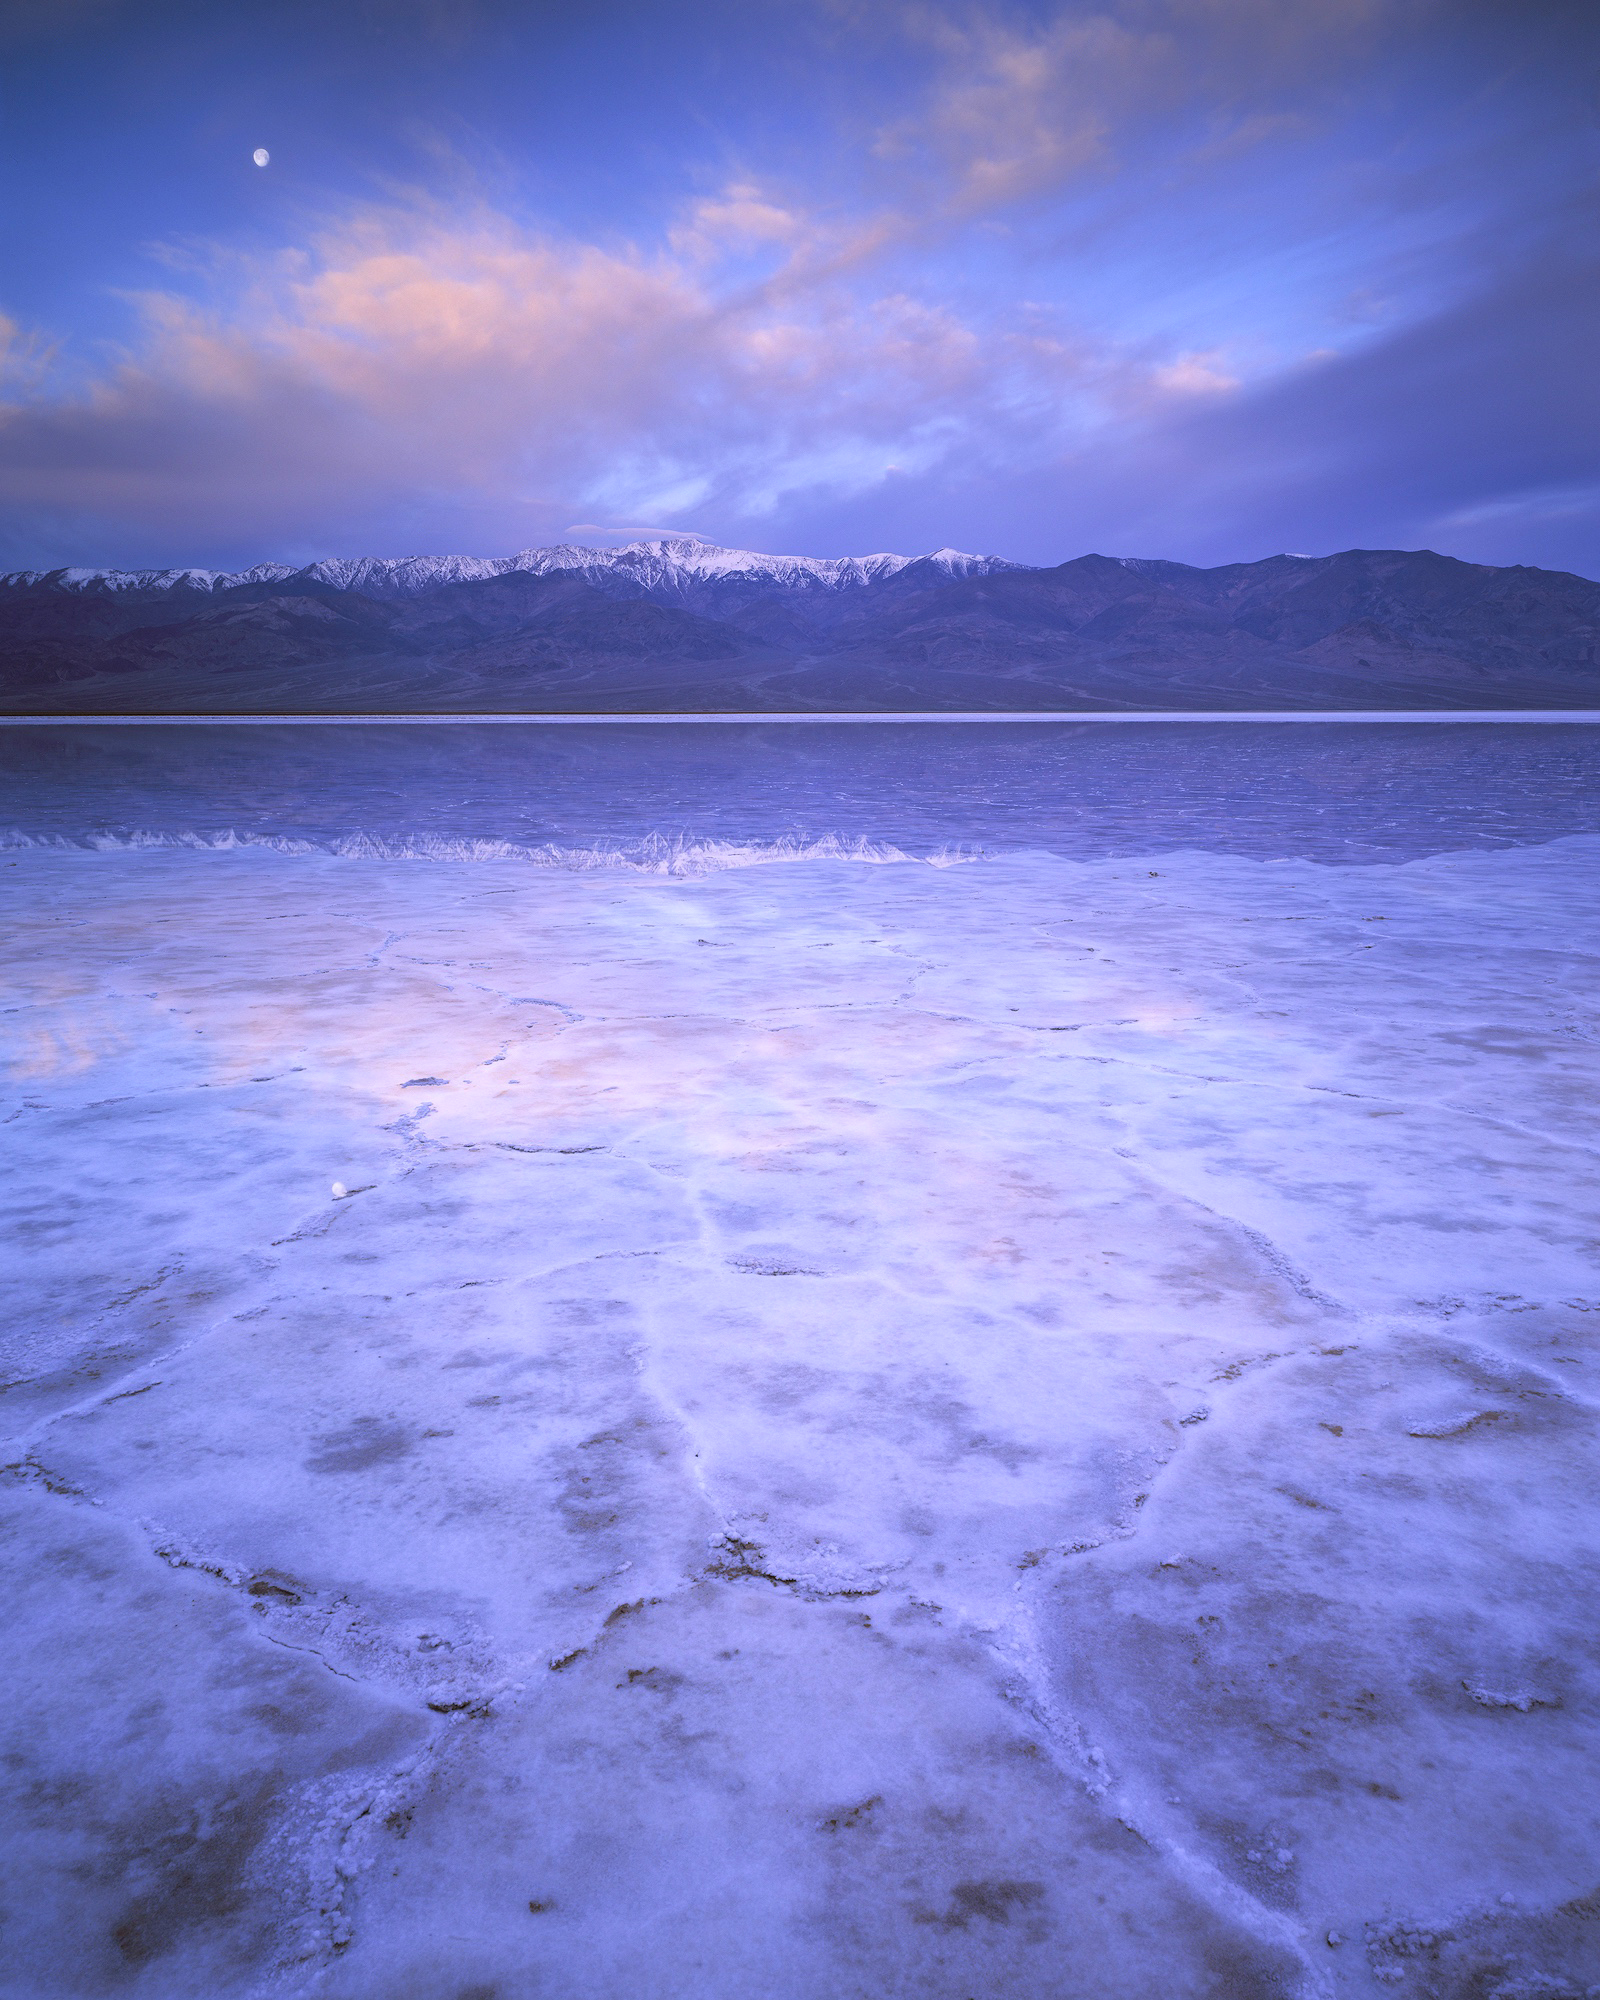 "Badwater Basin and Moonrise, Chamonix 4x5, Rodenstock 90mm f/6.8, 8"" exposure @ f/32 on Fuji Velvia 50 - March, 2019"